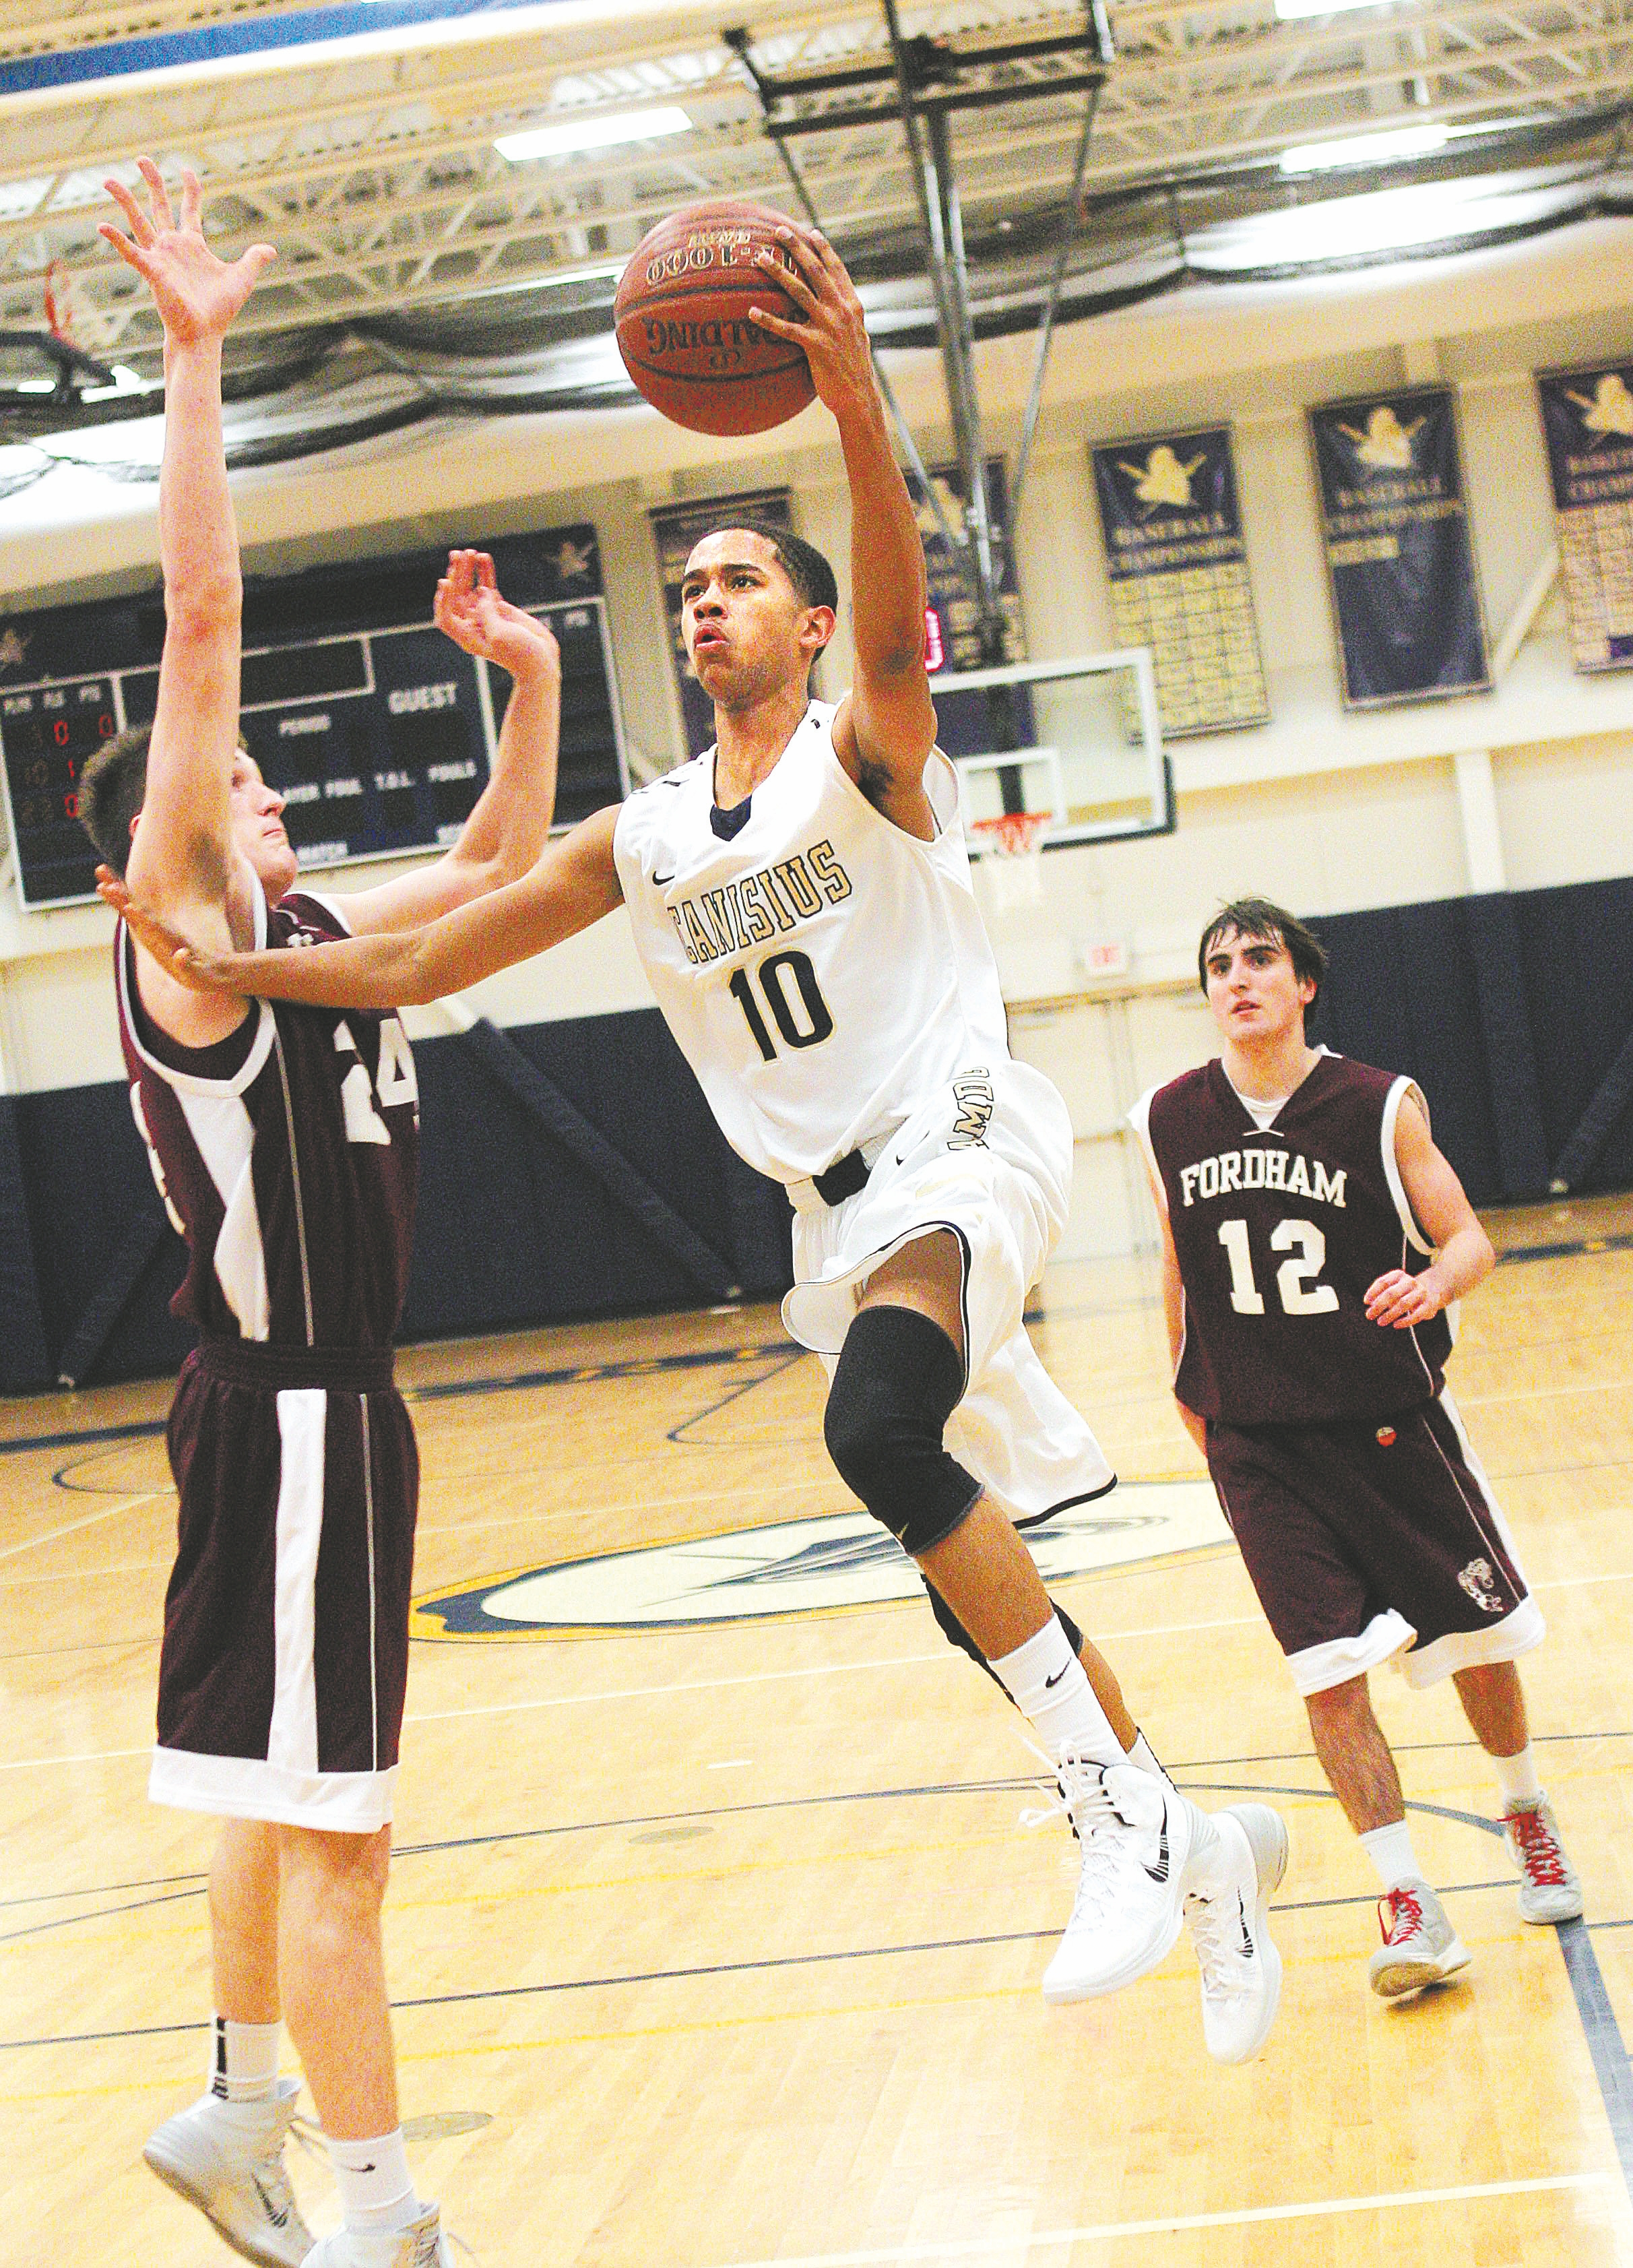 Canisius High School sophomore forward Howard Washington has plenty of offers from Division I colleges from which to consider.